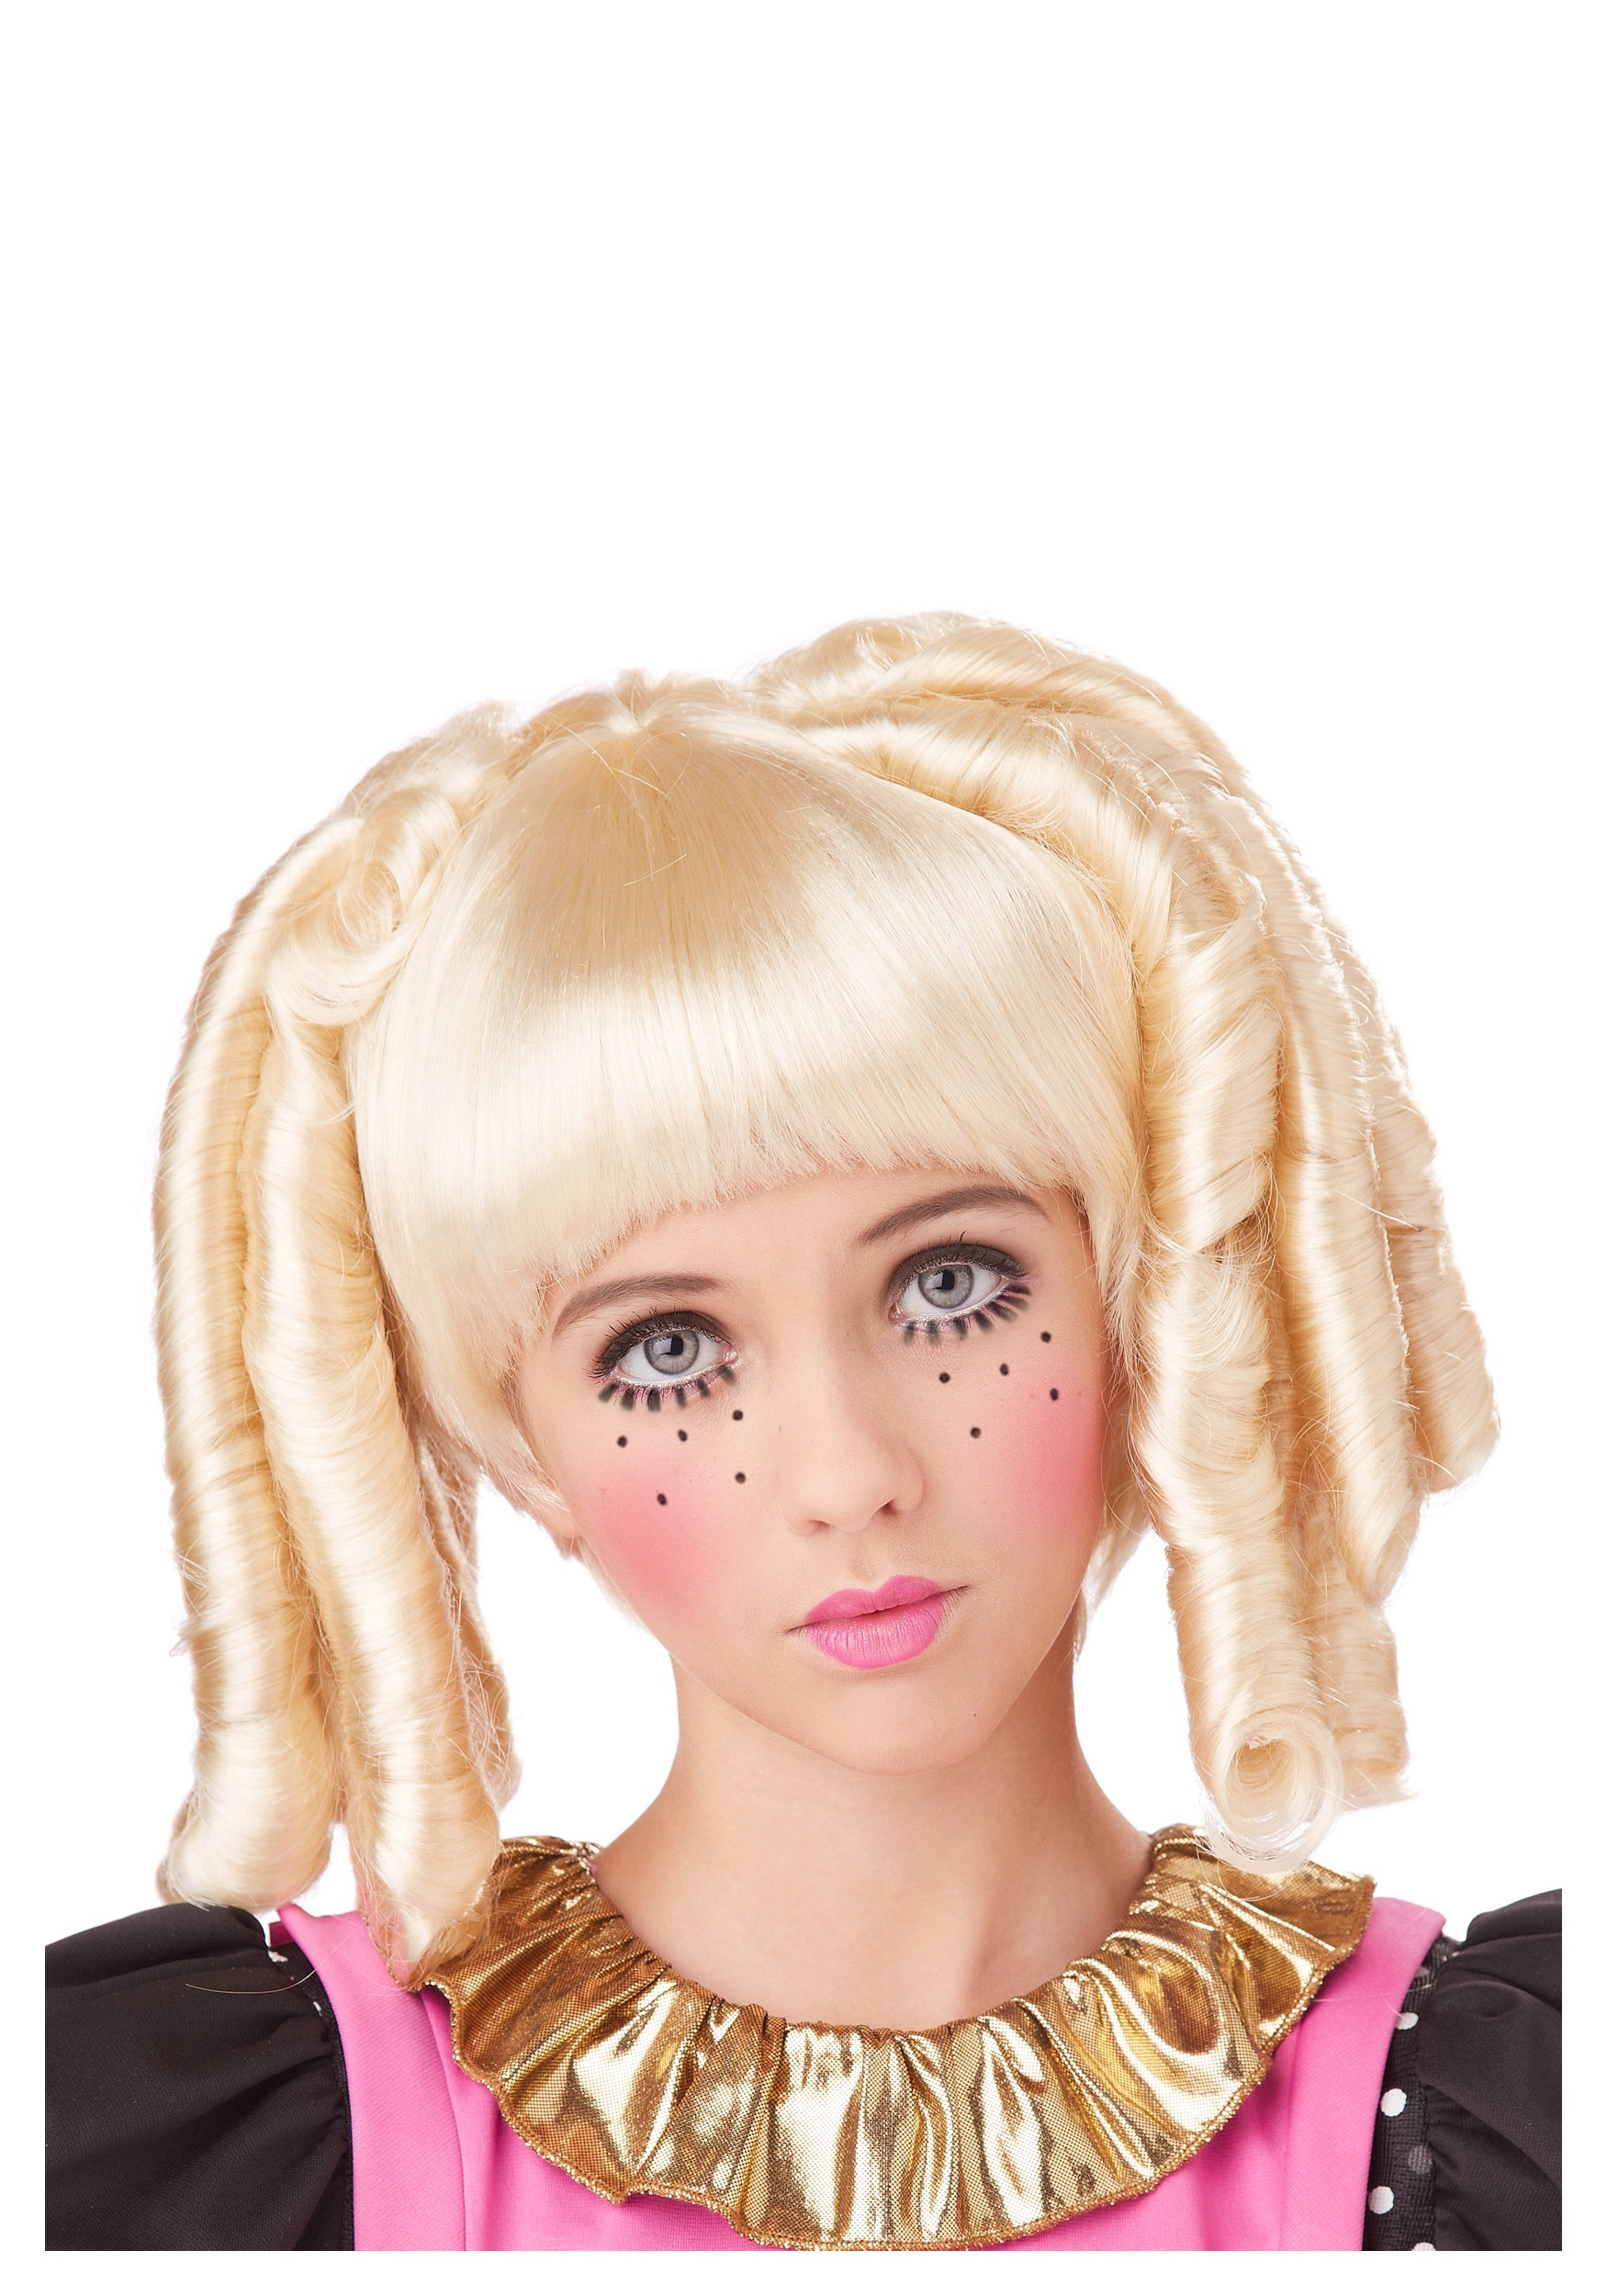 Girls Blonde Baby Doll Curls Wig with Bangs  sc 1 st  Halloween Costumes & Girls Blonde Baby Doll Curls Wig with Bangs - Halloween Costumes